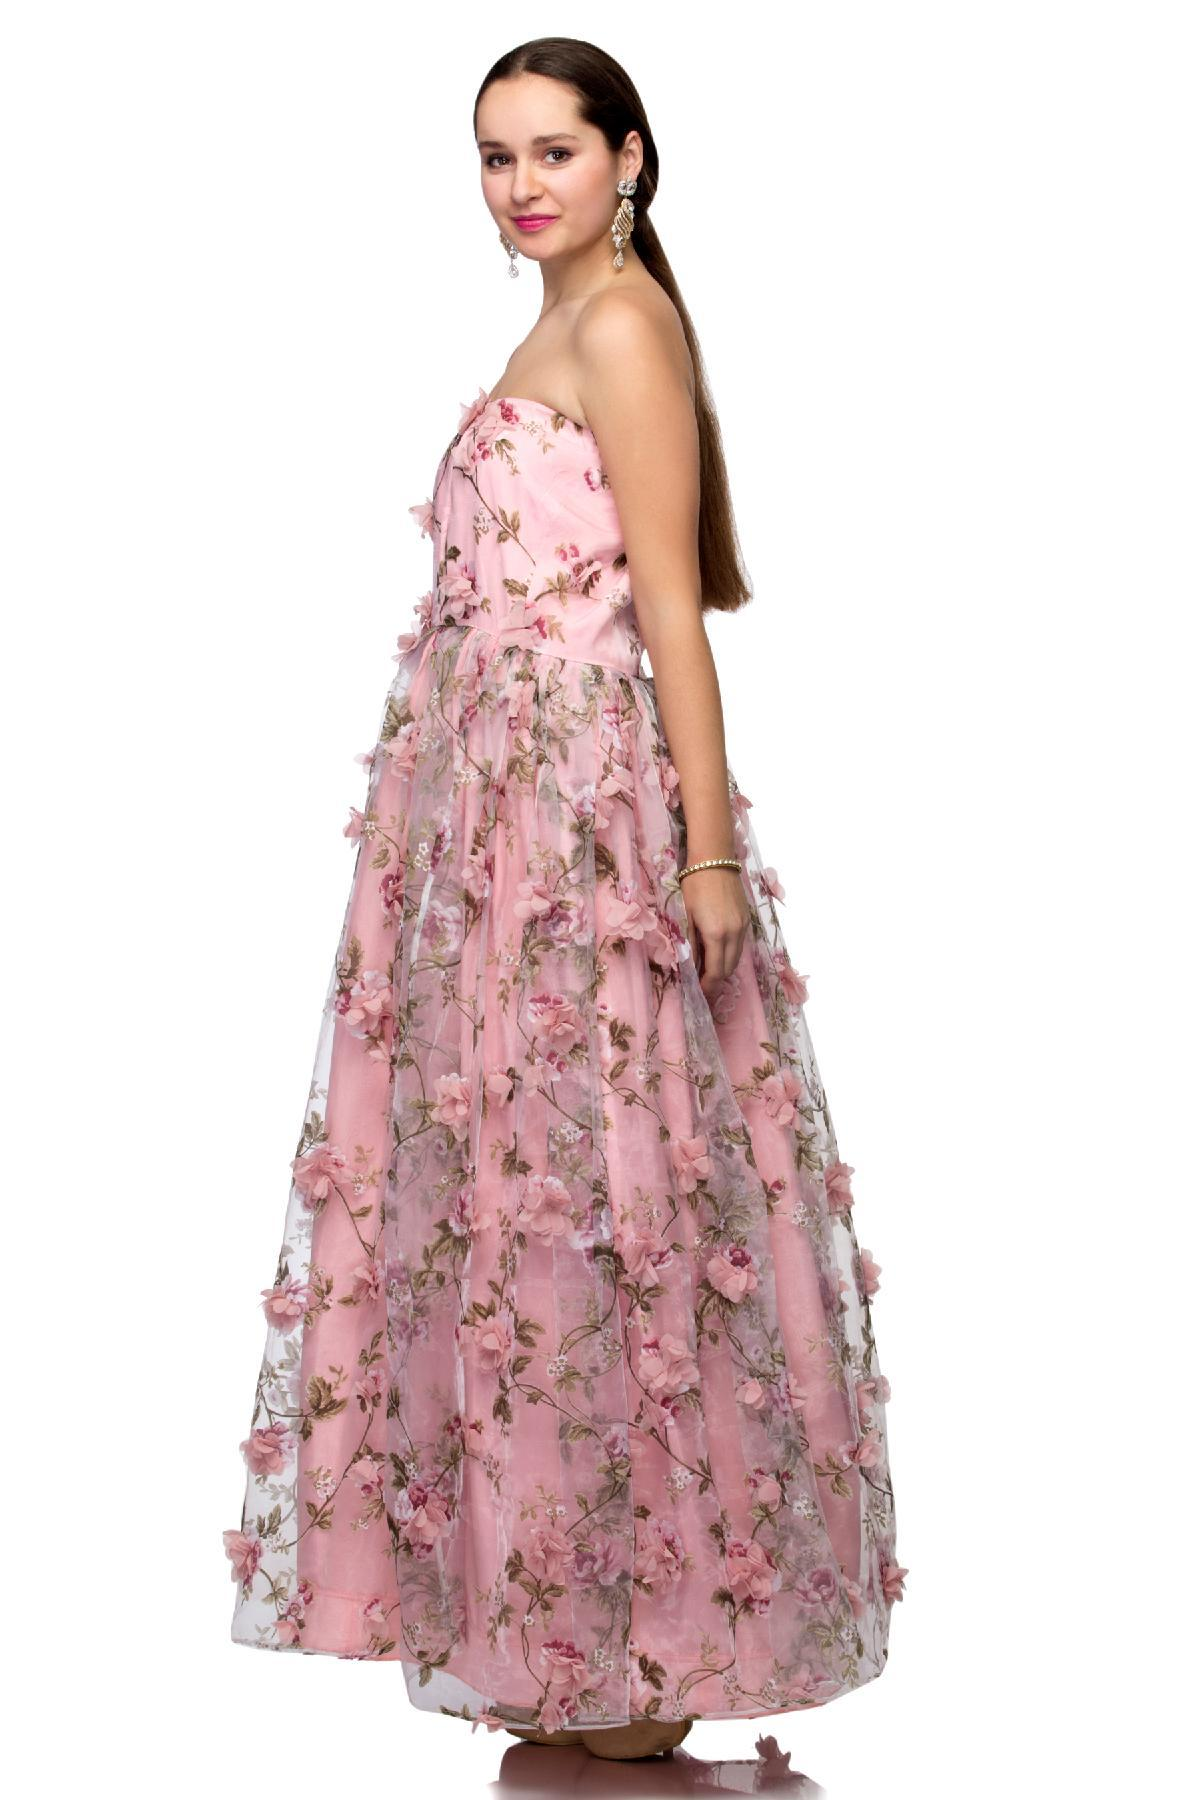 Baby Pink Floor Length Gown with Pink Flowers by Meenakshi Makkar